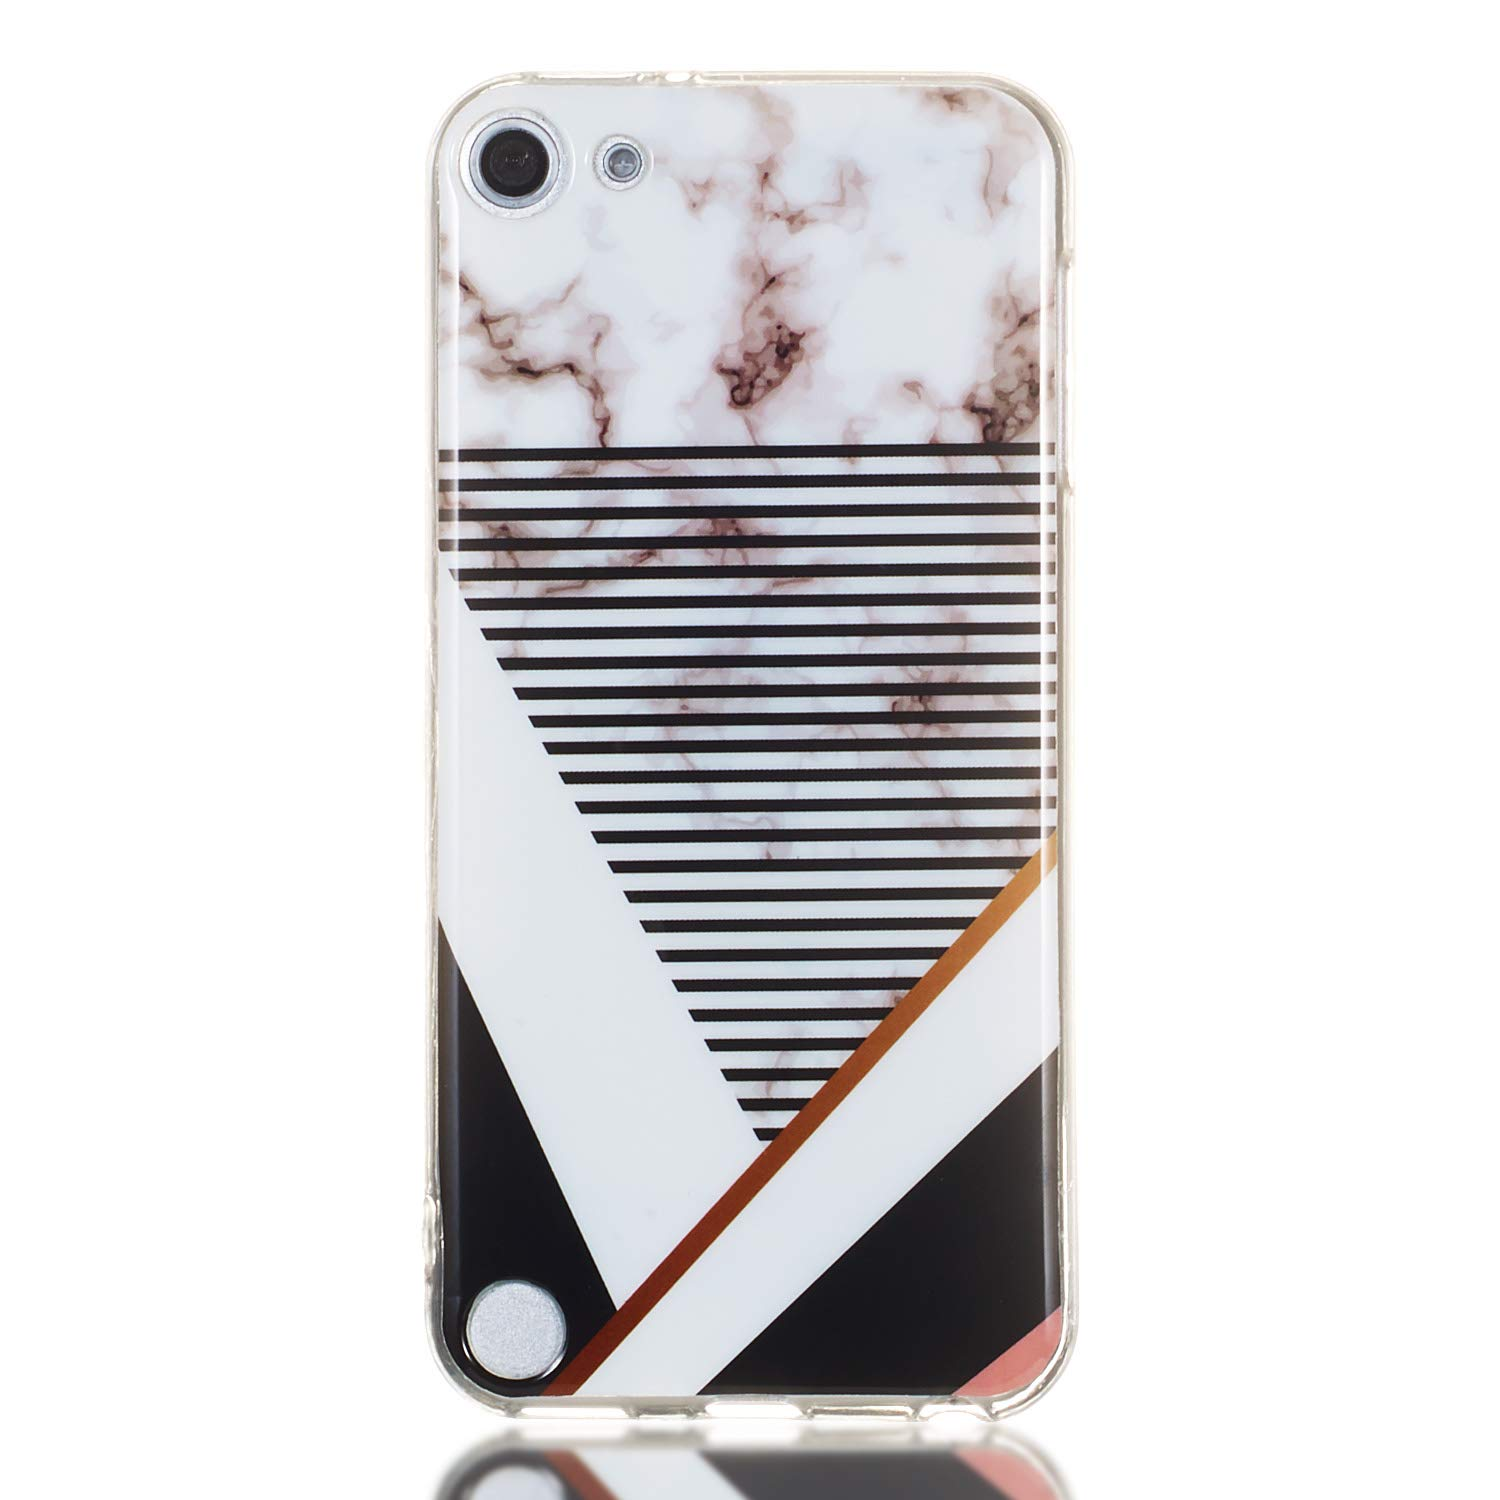 Yobby Marbre Coque pour iPod Touch 5,Coque iPod Touch 6 Souple Silicone Mignon Ultra Fine Blanc Phrases Motif Mince Flexible Caoutchouc Antichoc Housse Etui de Protection